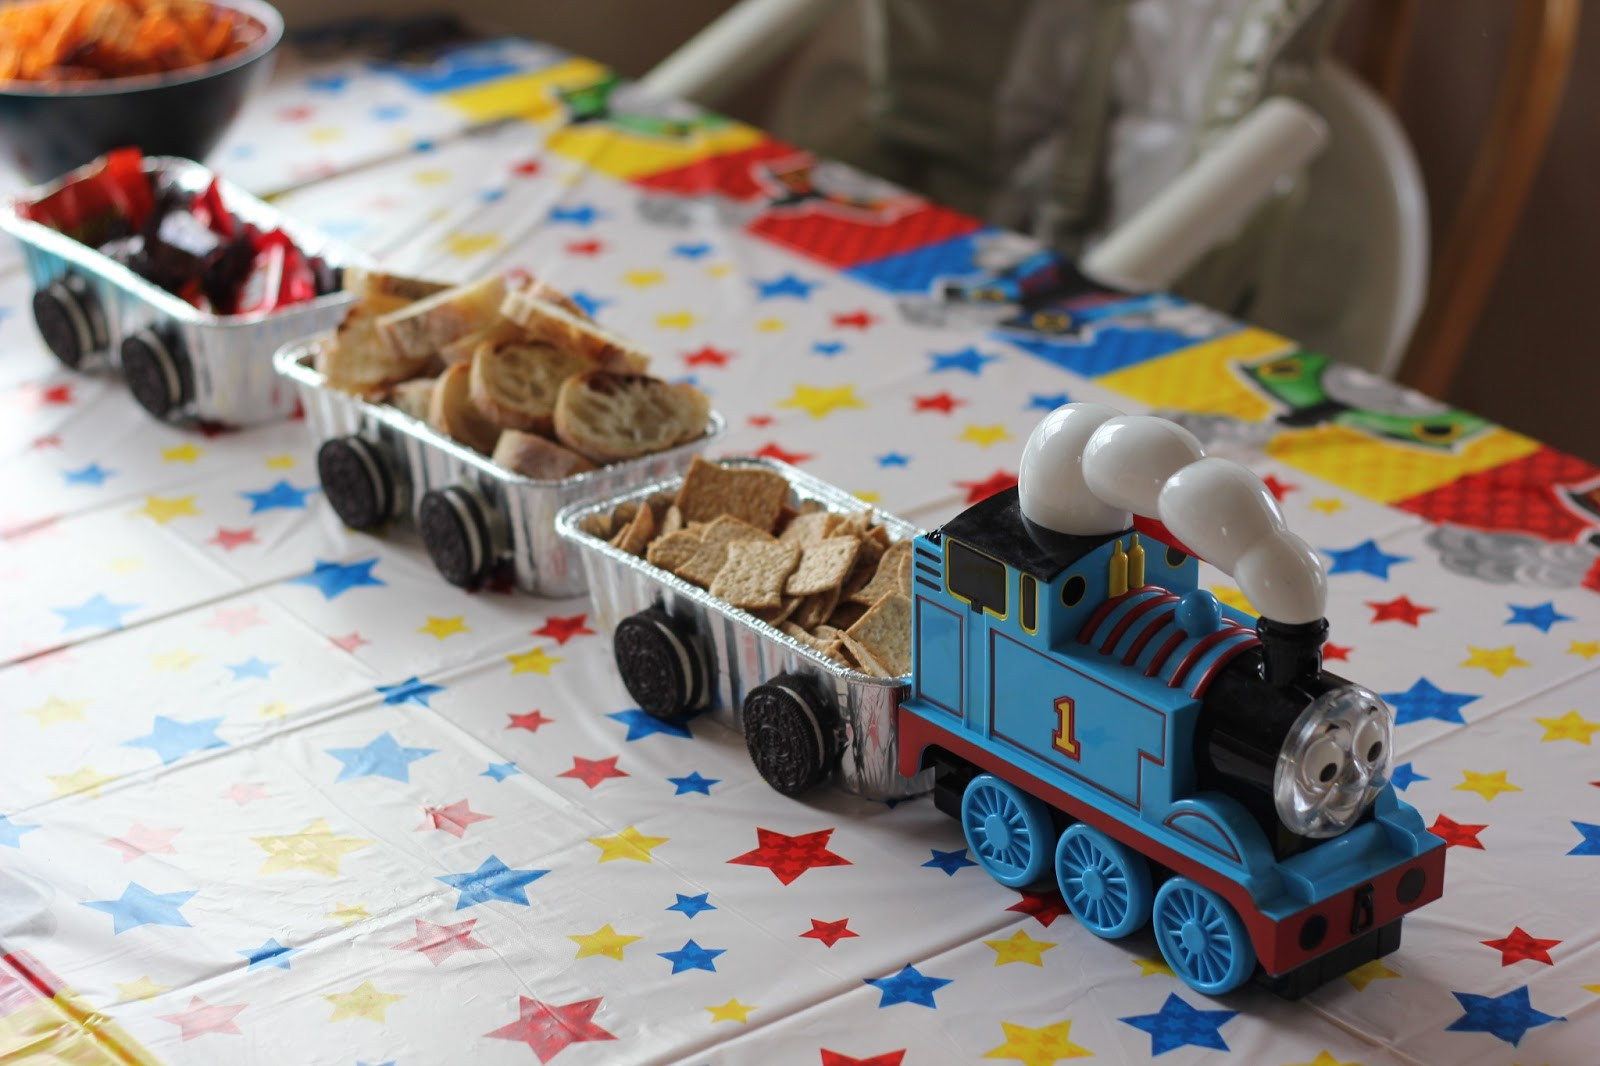 Best ideas about Thomas The Train Birthday Decorations . Save or Pin Number 1 Viking Fan A Thomas the Train Birthday Party Now.